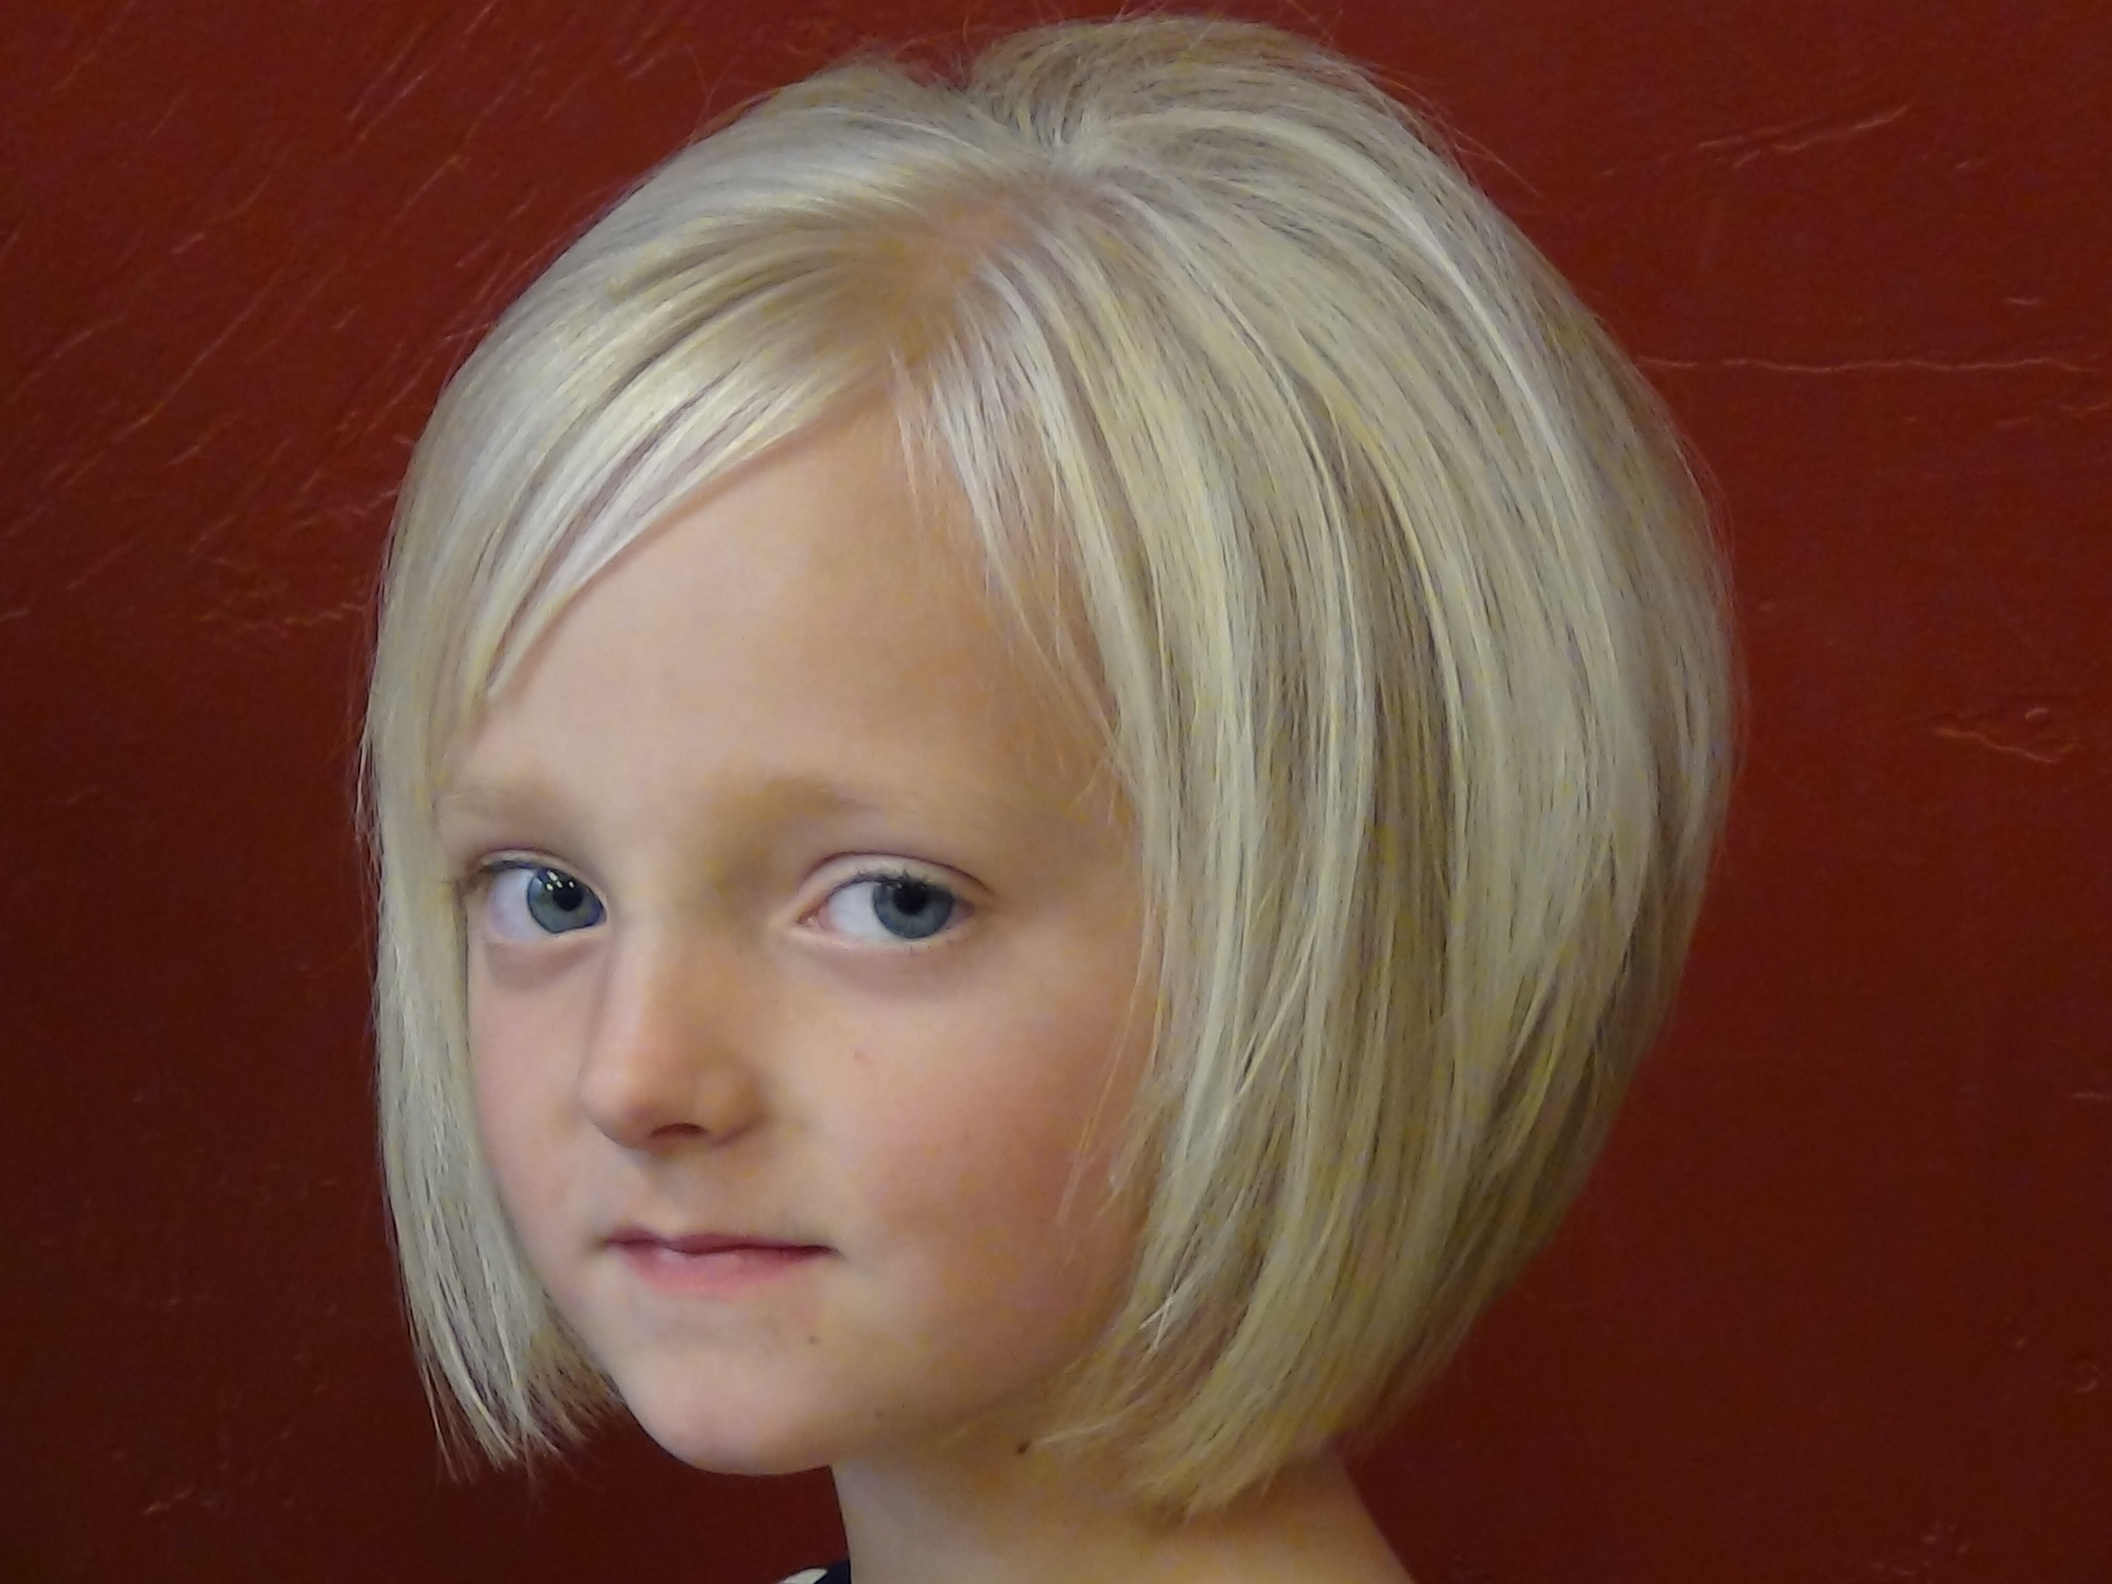 Cut short style into little girls hair and style boys and girls hair